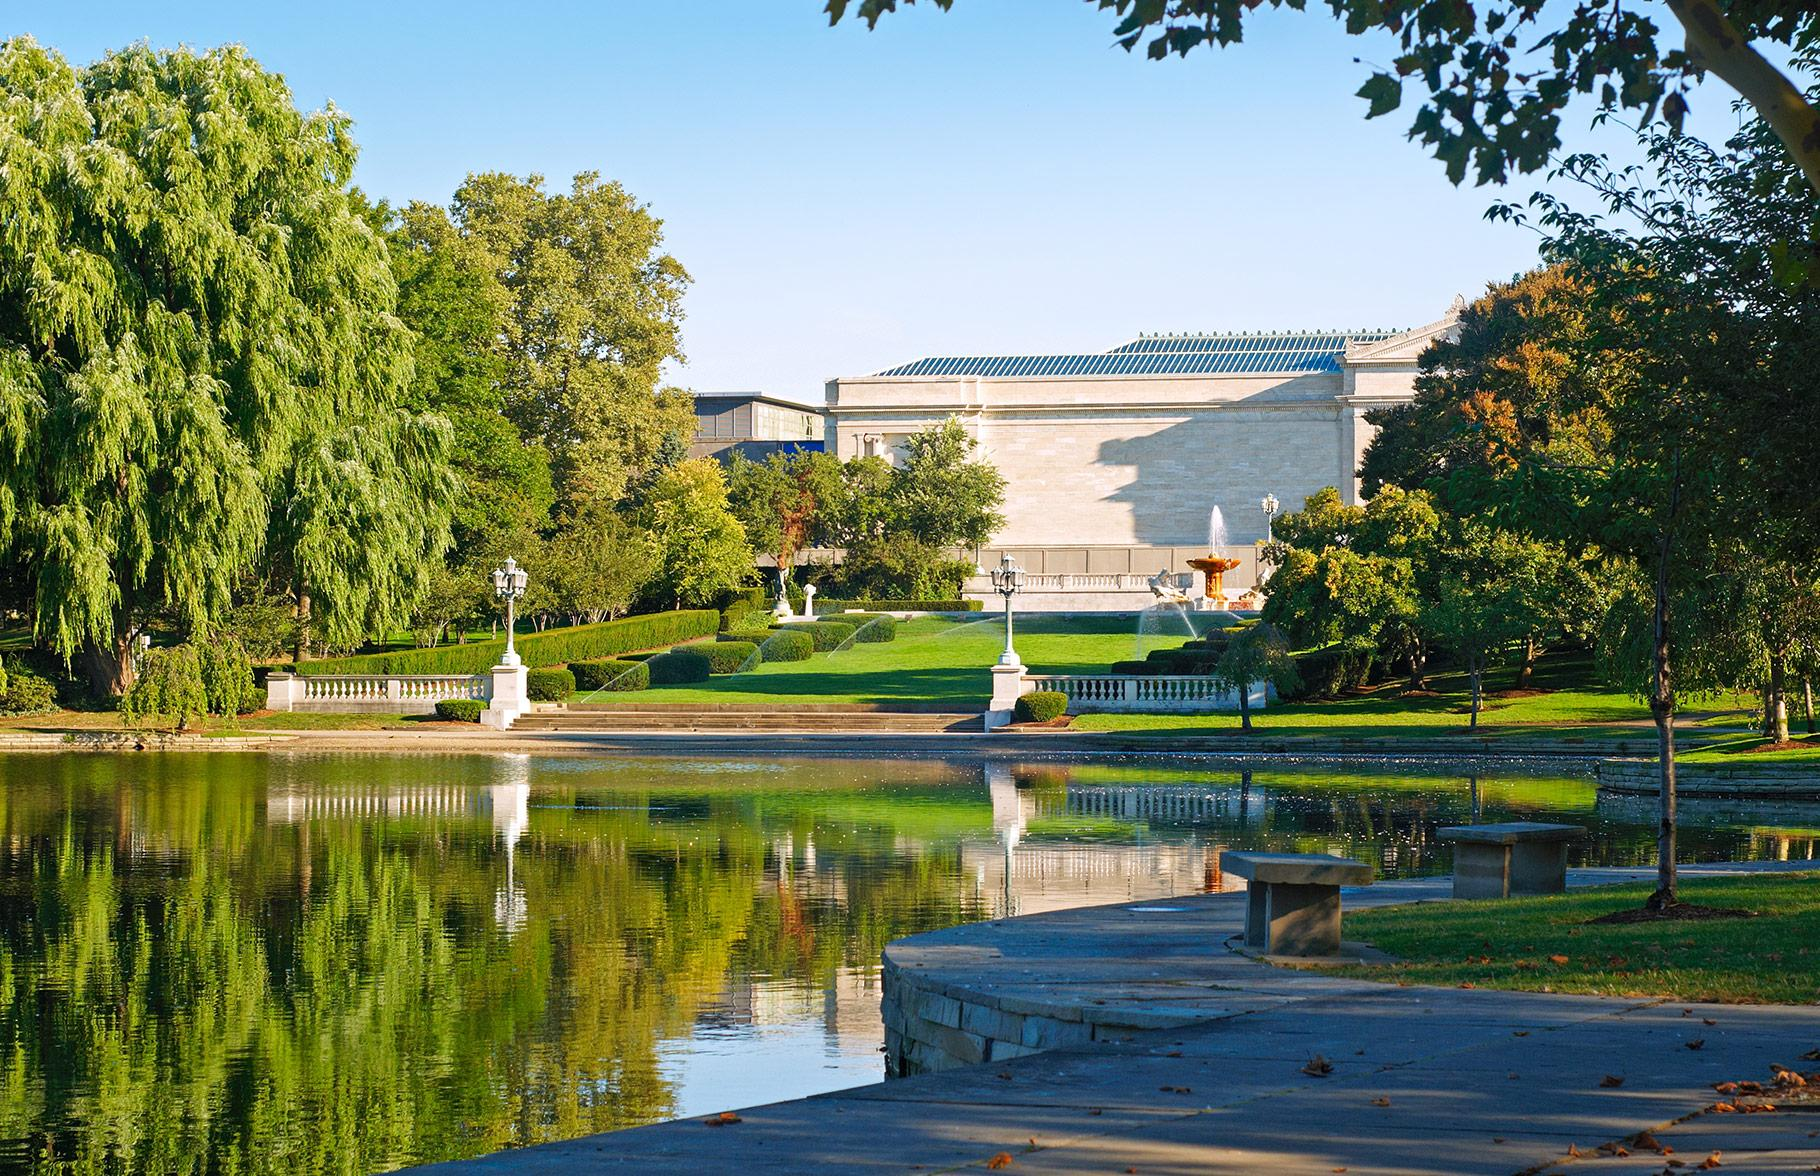 A view of the front of the Cleveland Museum of Art with the pond in front